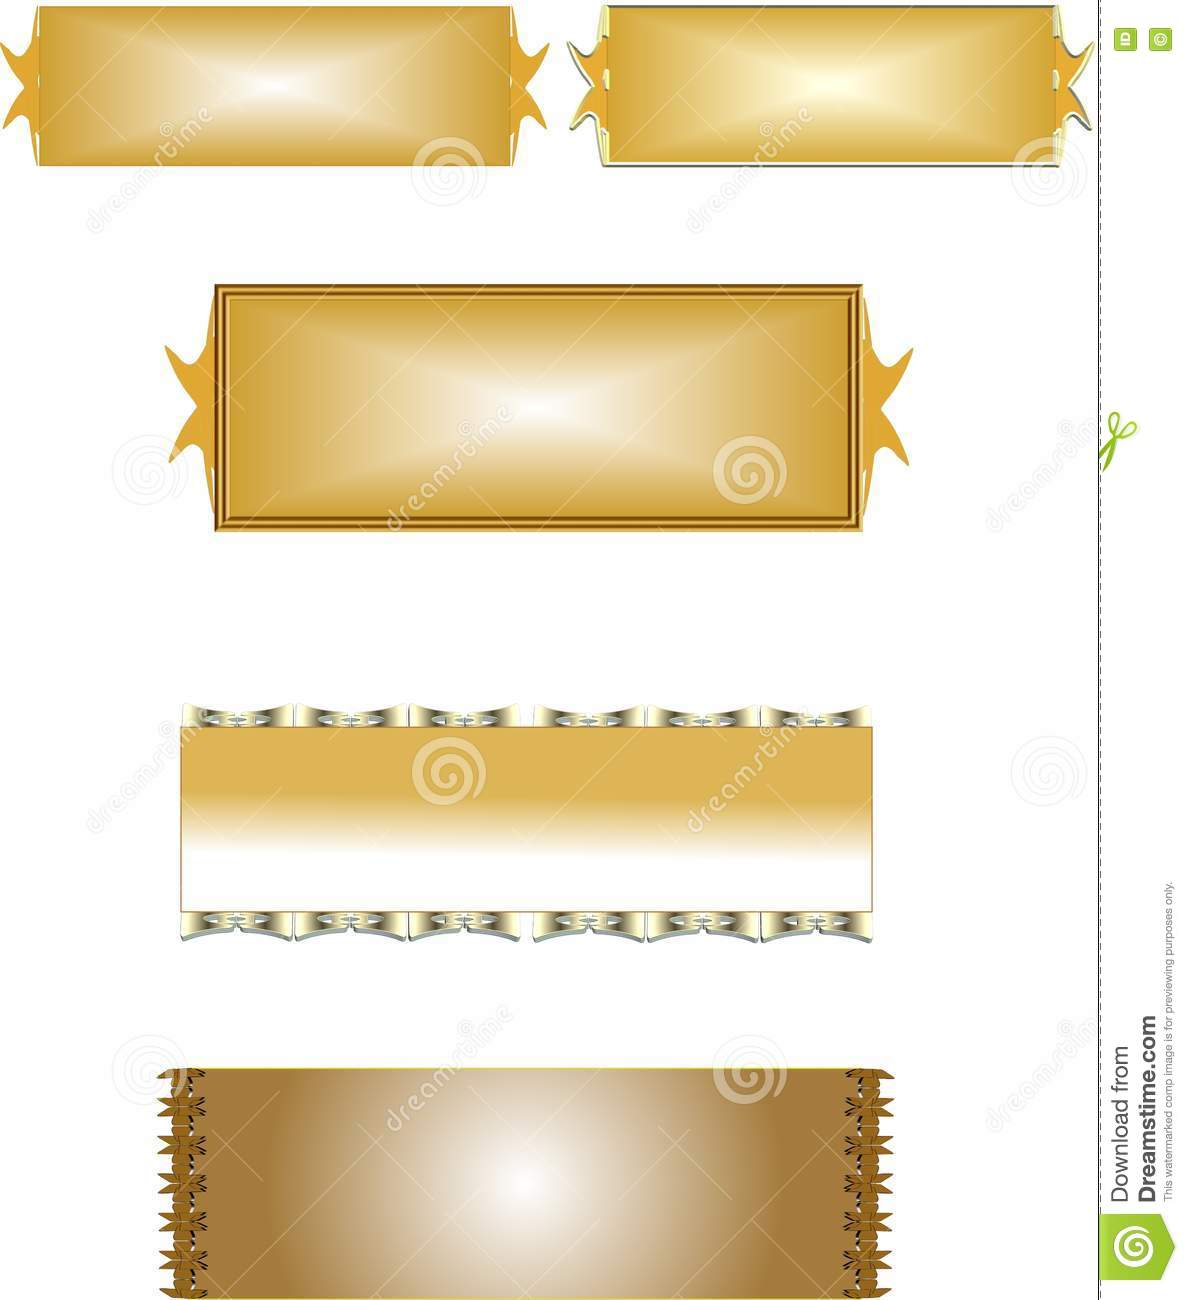 Brass name plates stock illustration image of tags memo - Brass name plate designs for home ...